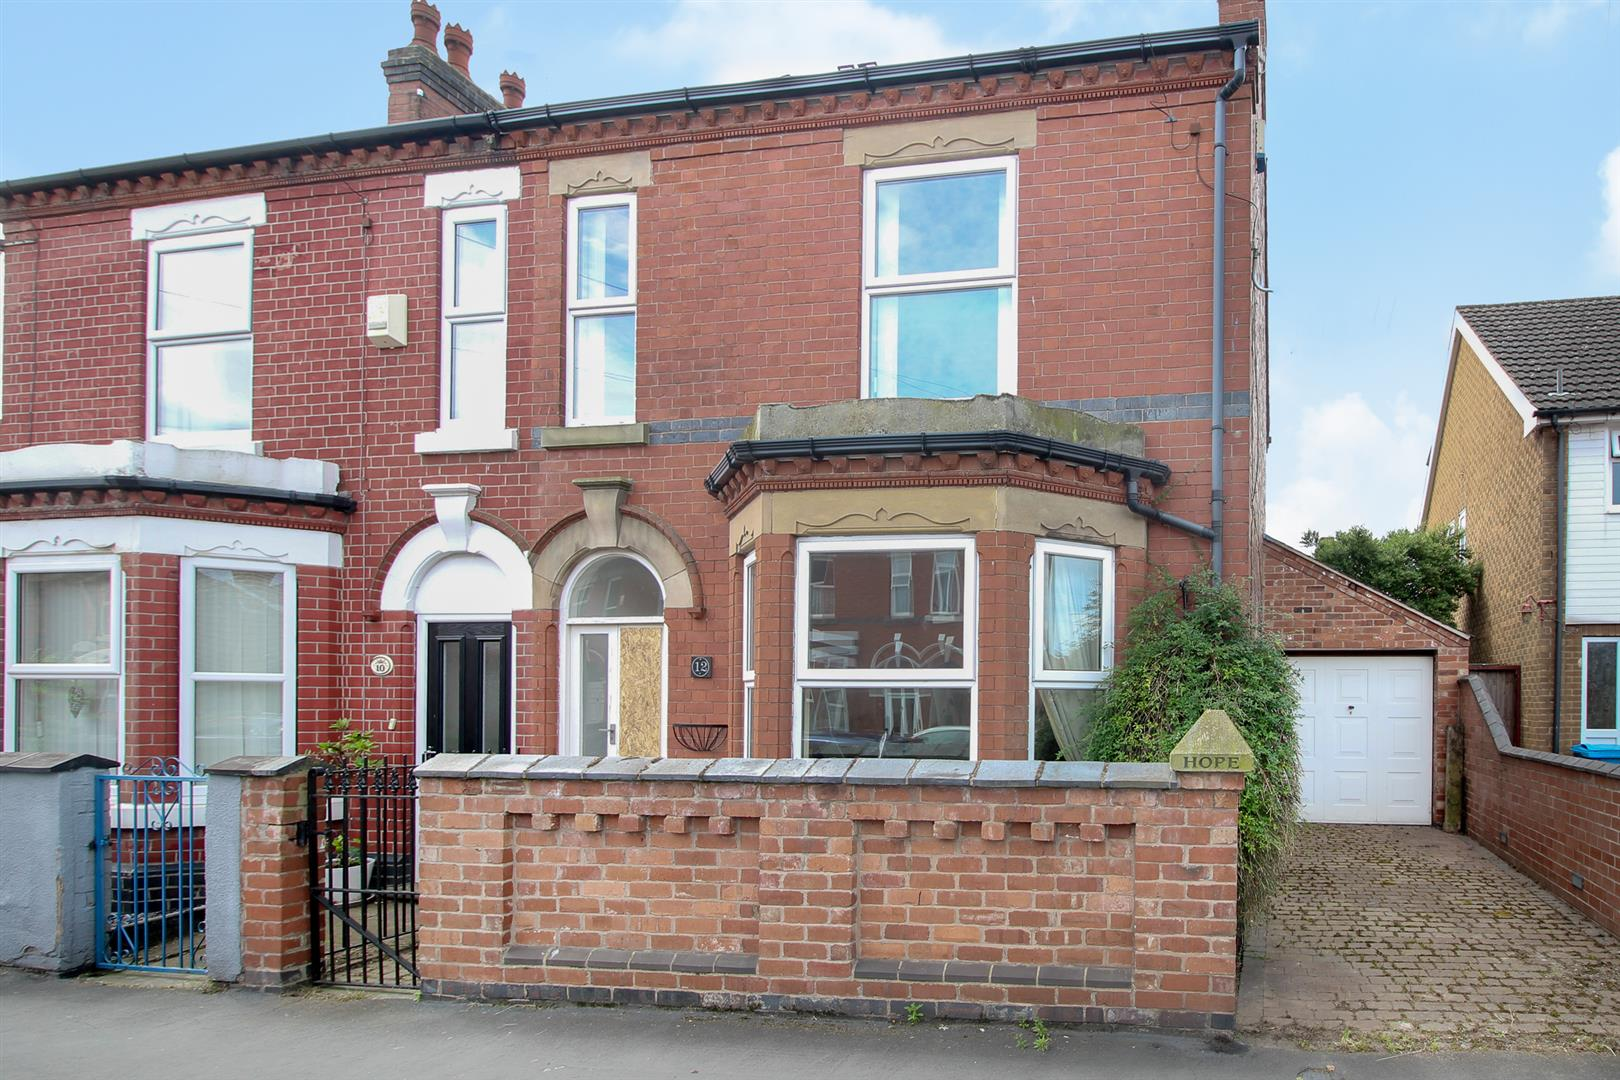 3 Bedrooms House for sale in King Edward Street, Sandiacre